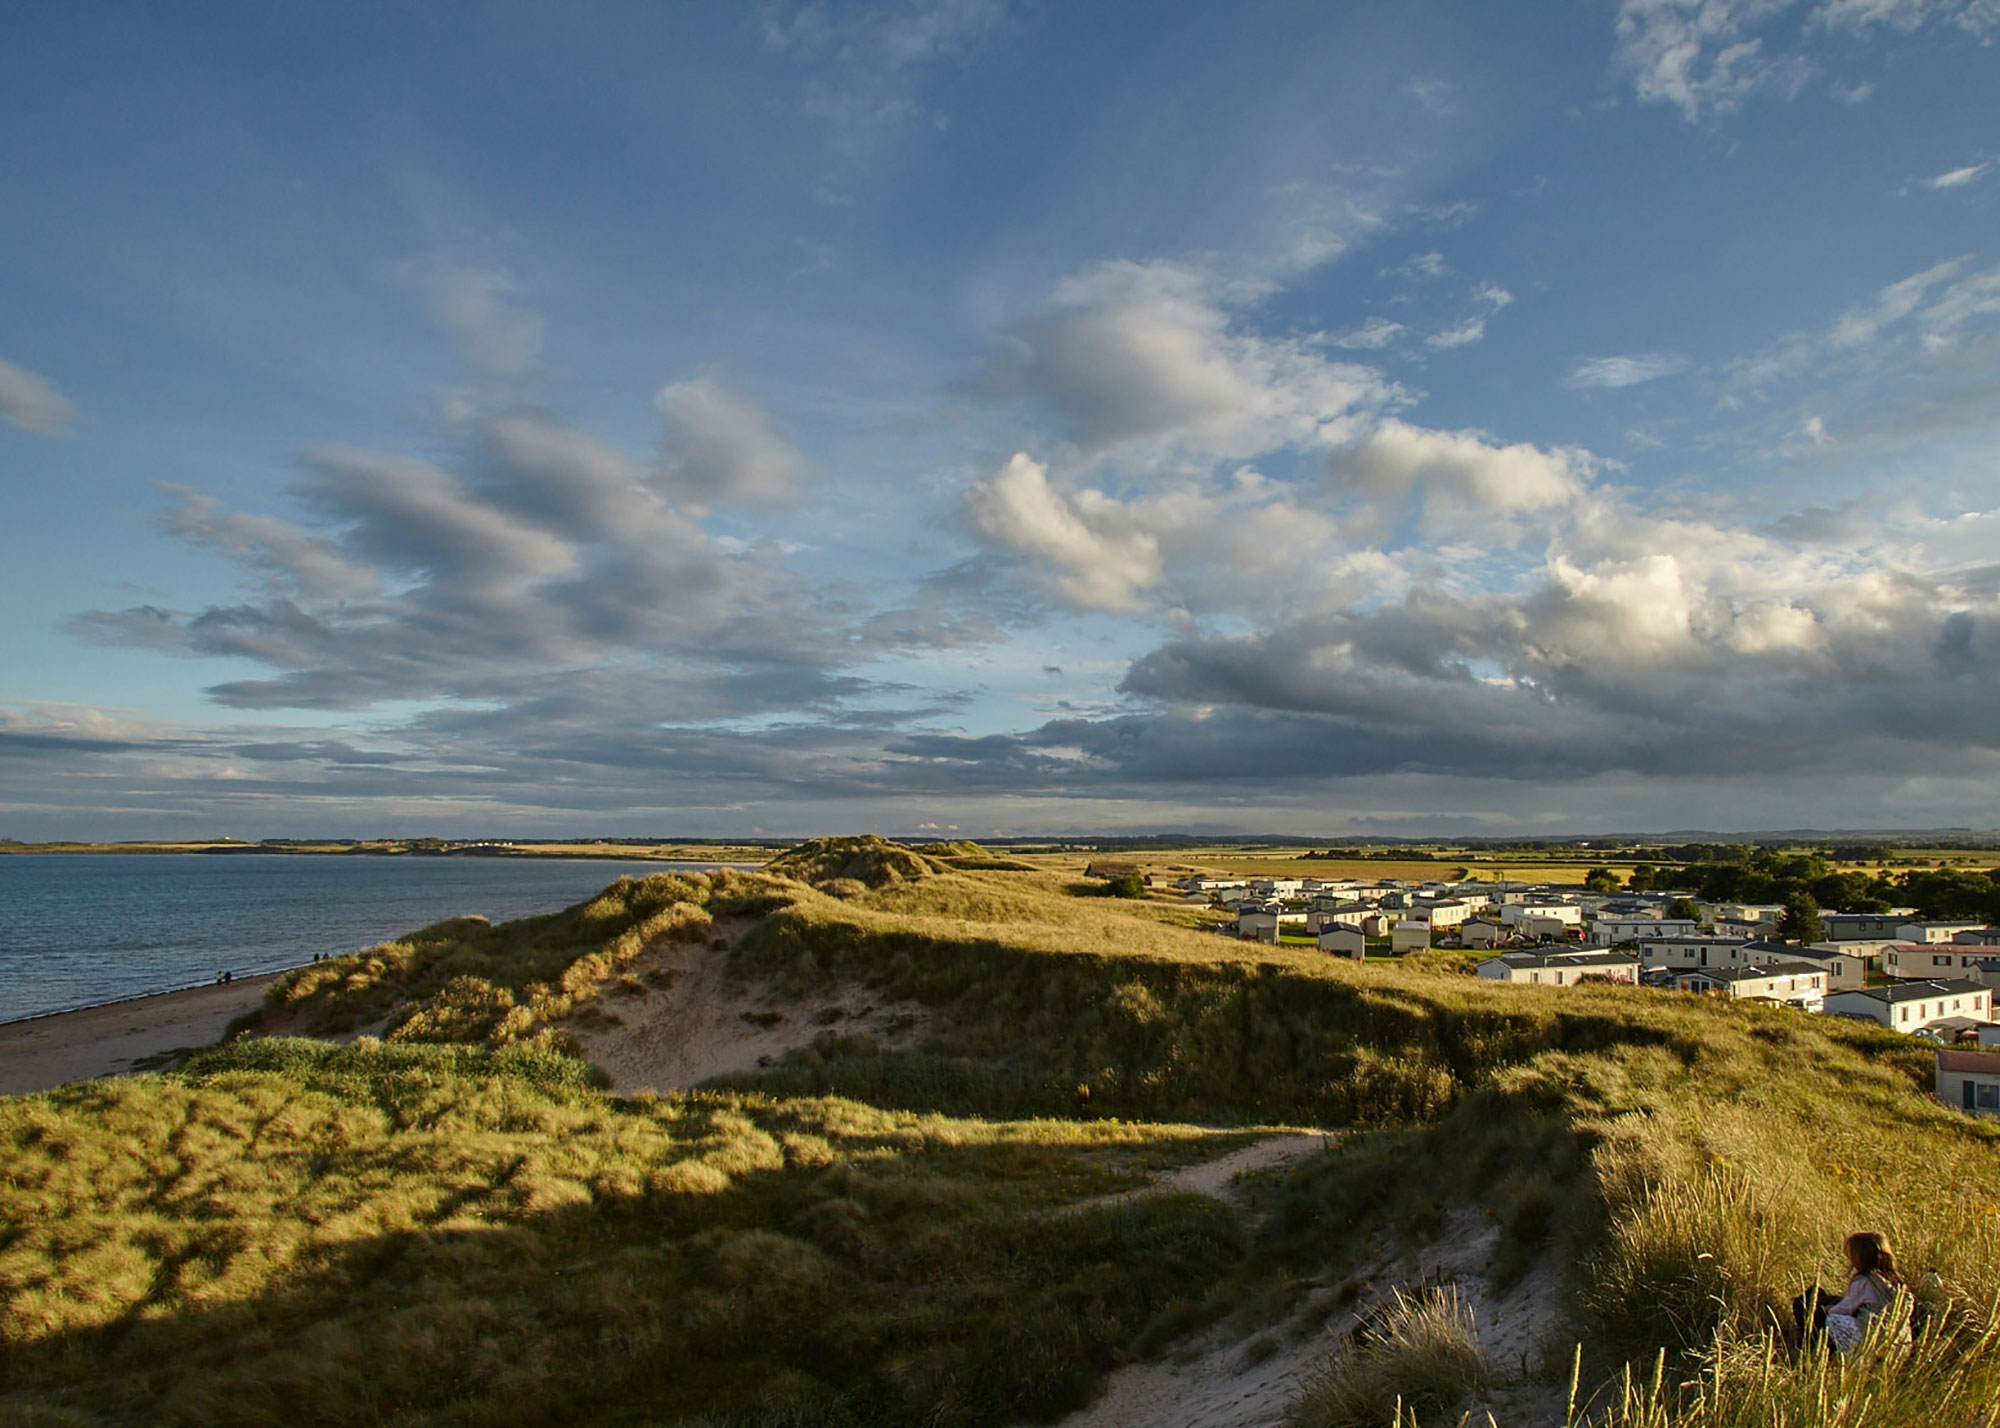 BEADNELL BAYCARAVAN PARK - Full web build, social and ppc strategy & management.